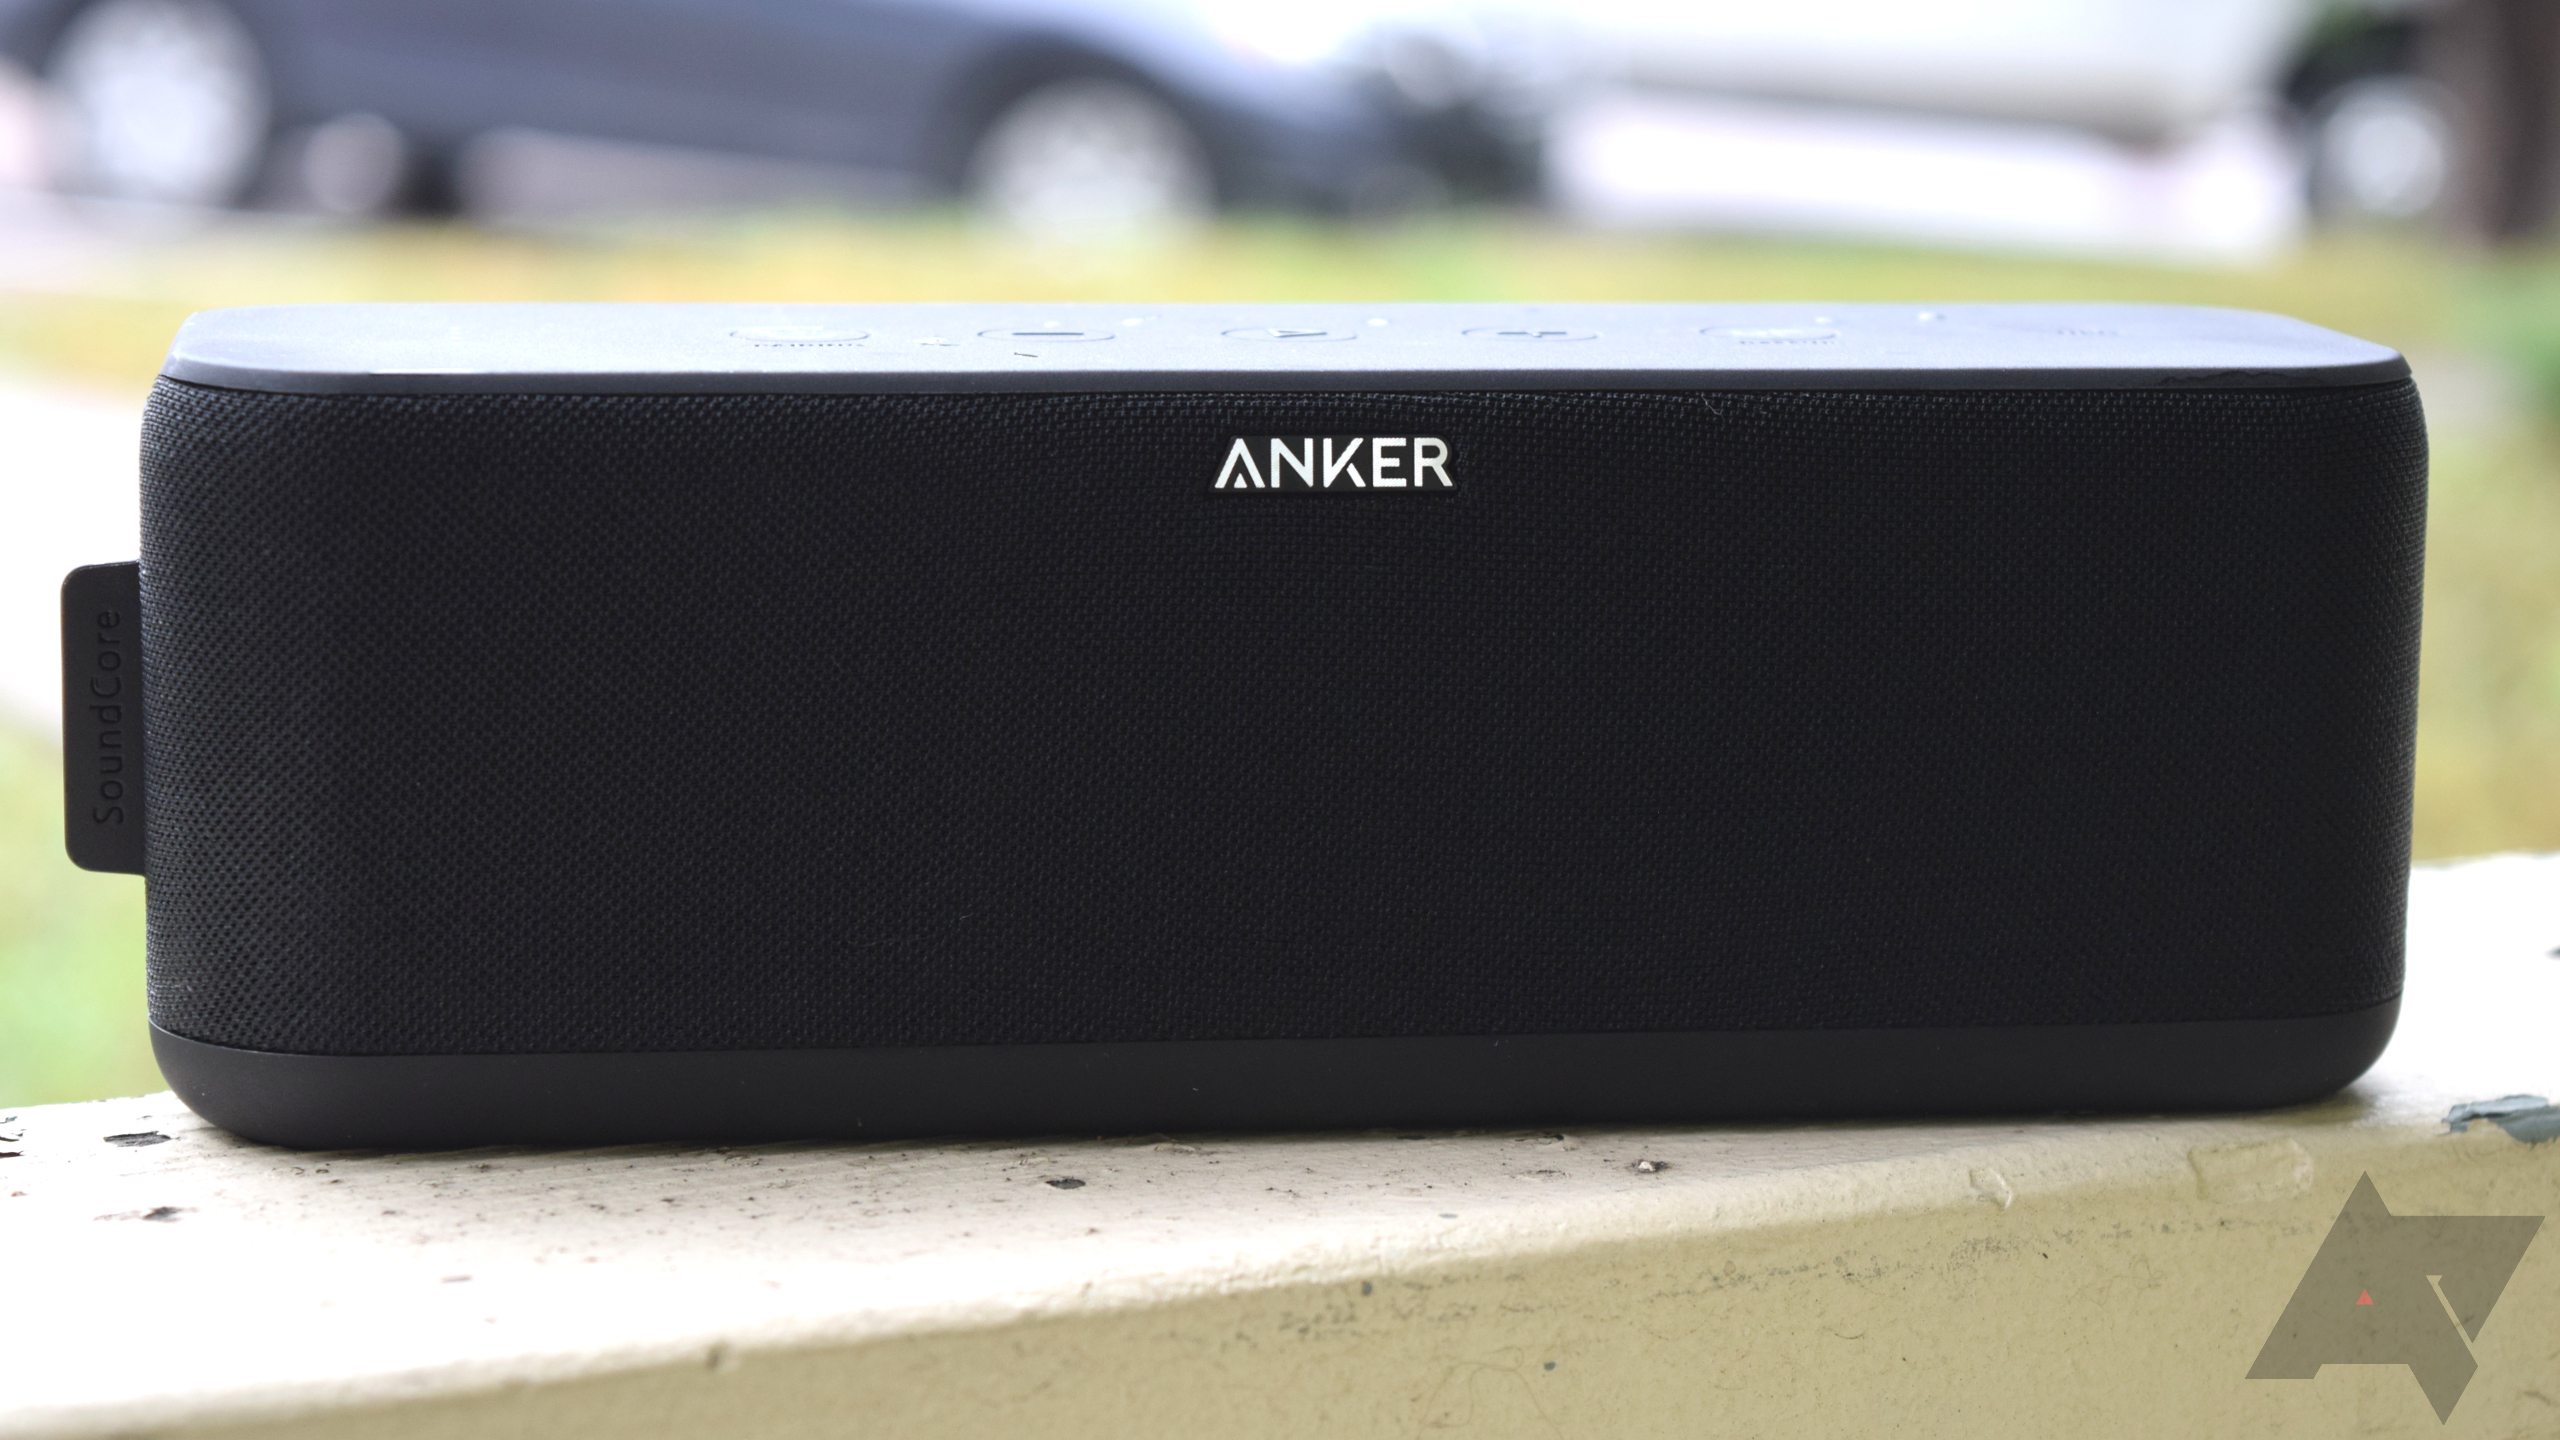 Anker SoundCore Boost review: A mediocre Bluetooth speaker with